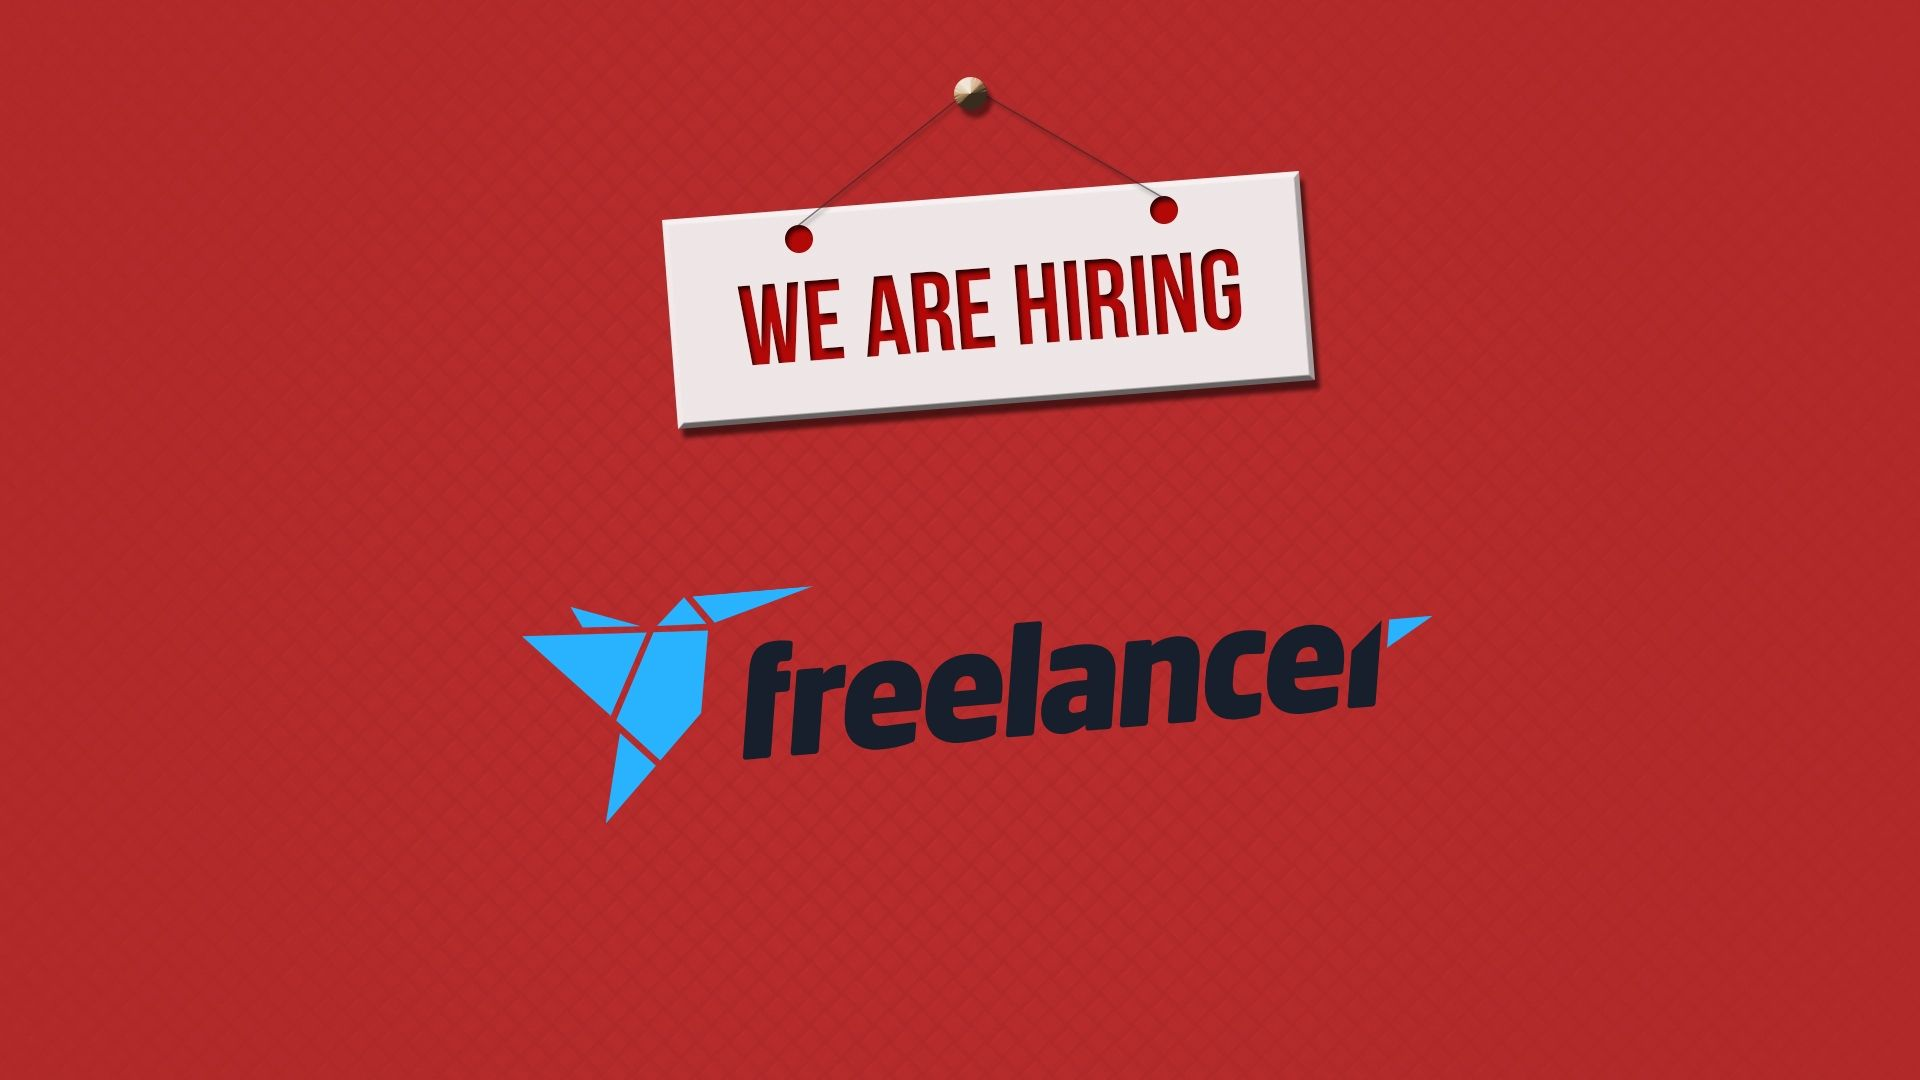 Tips For Hiring The Freelancers